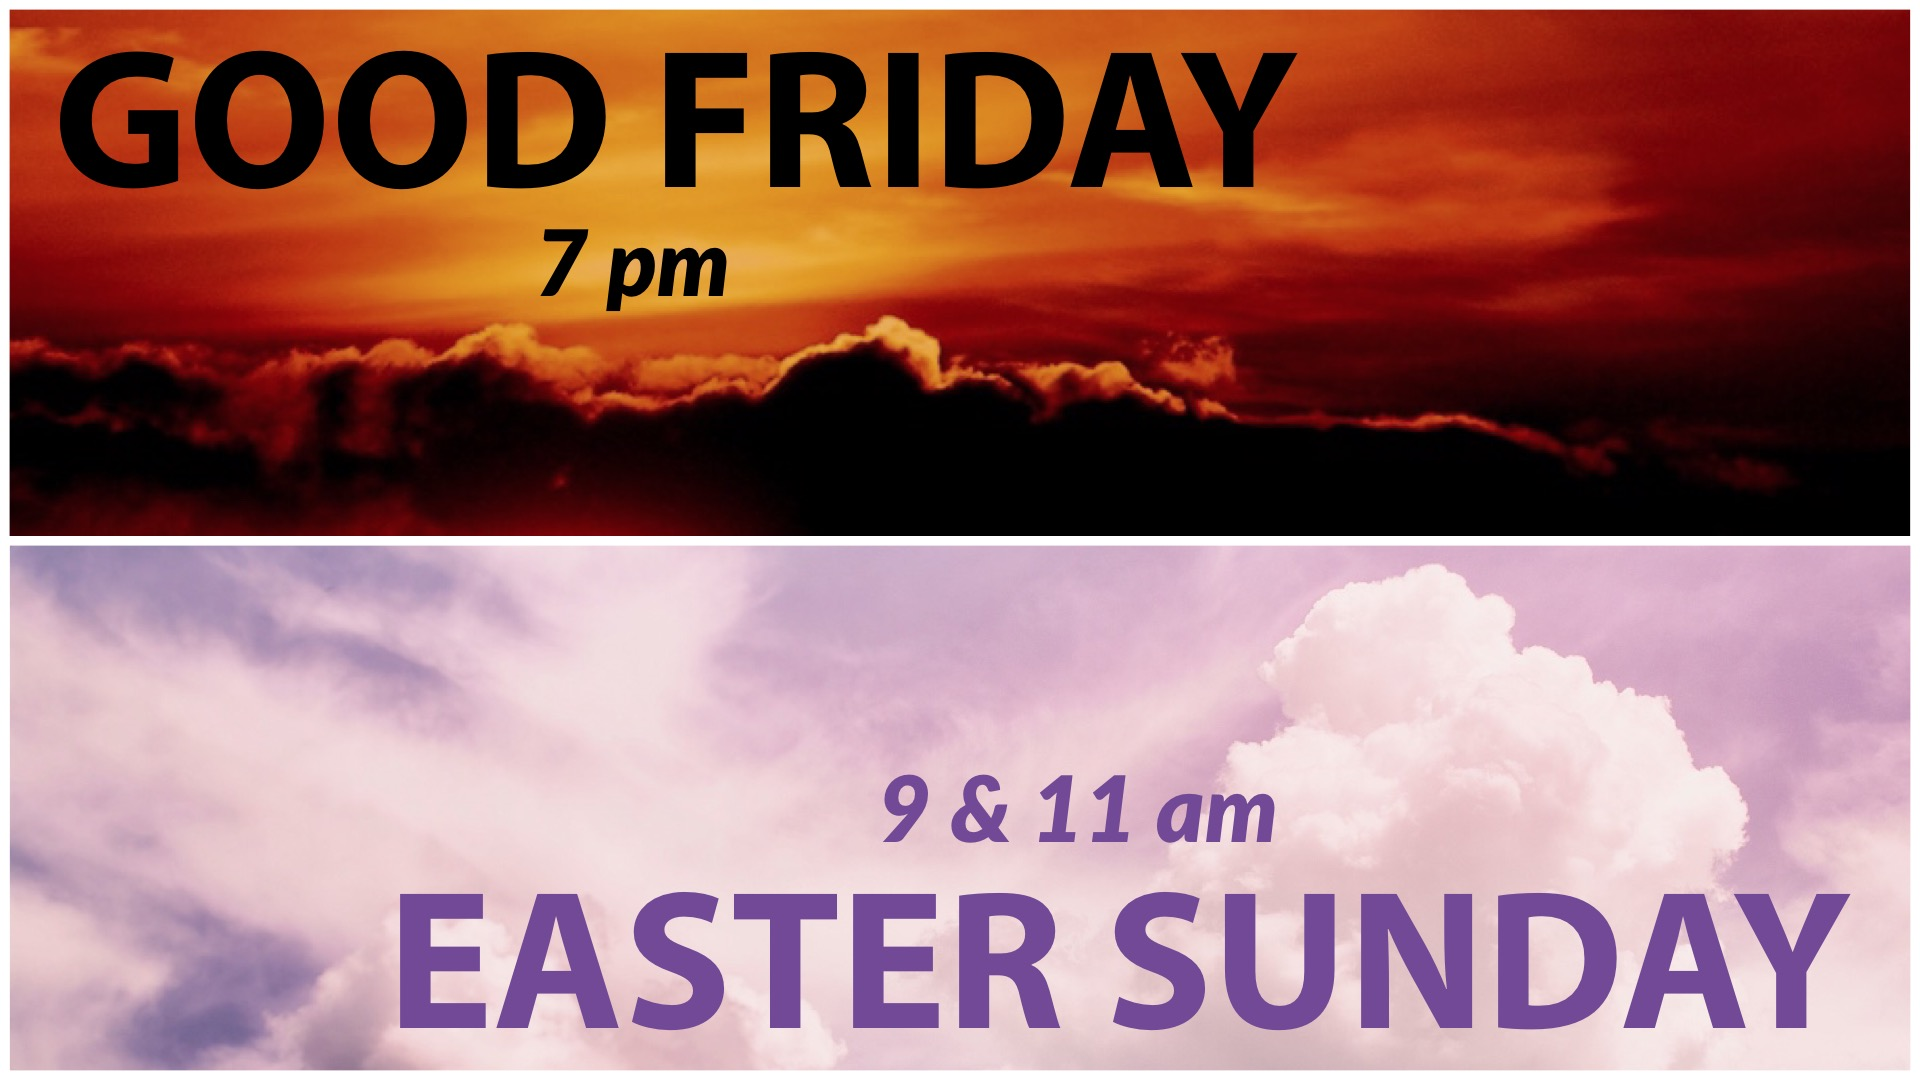 Good Friday - Easter GS2 image